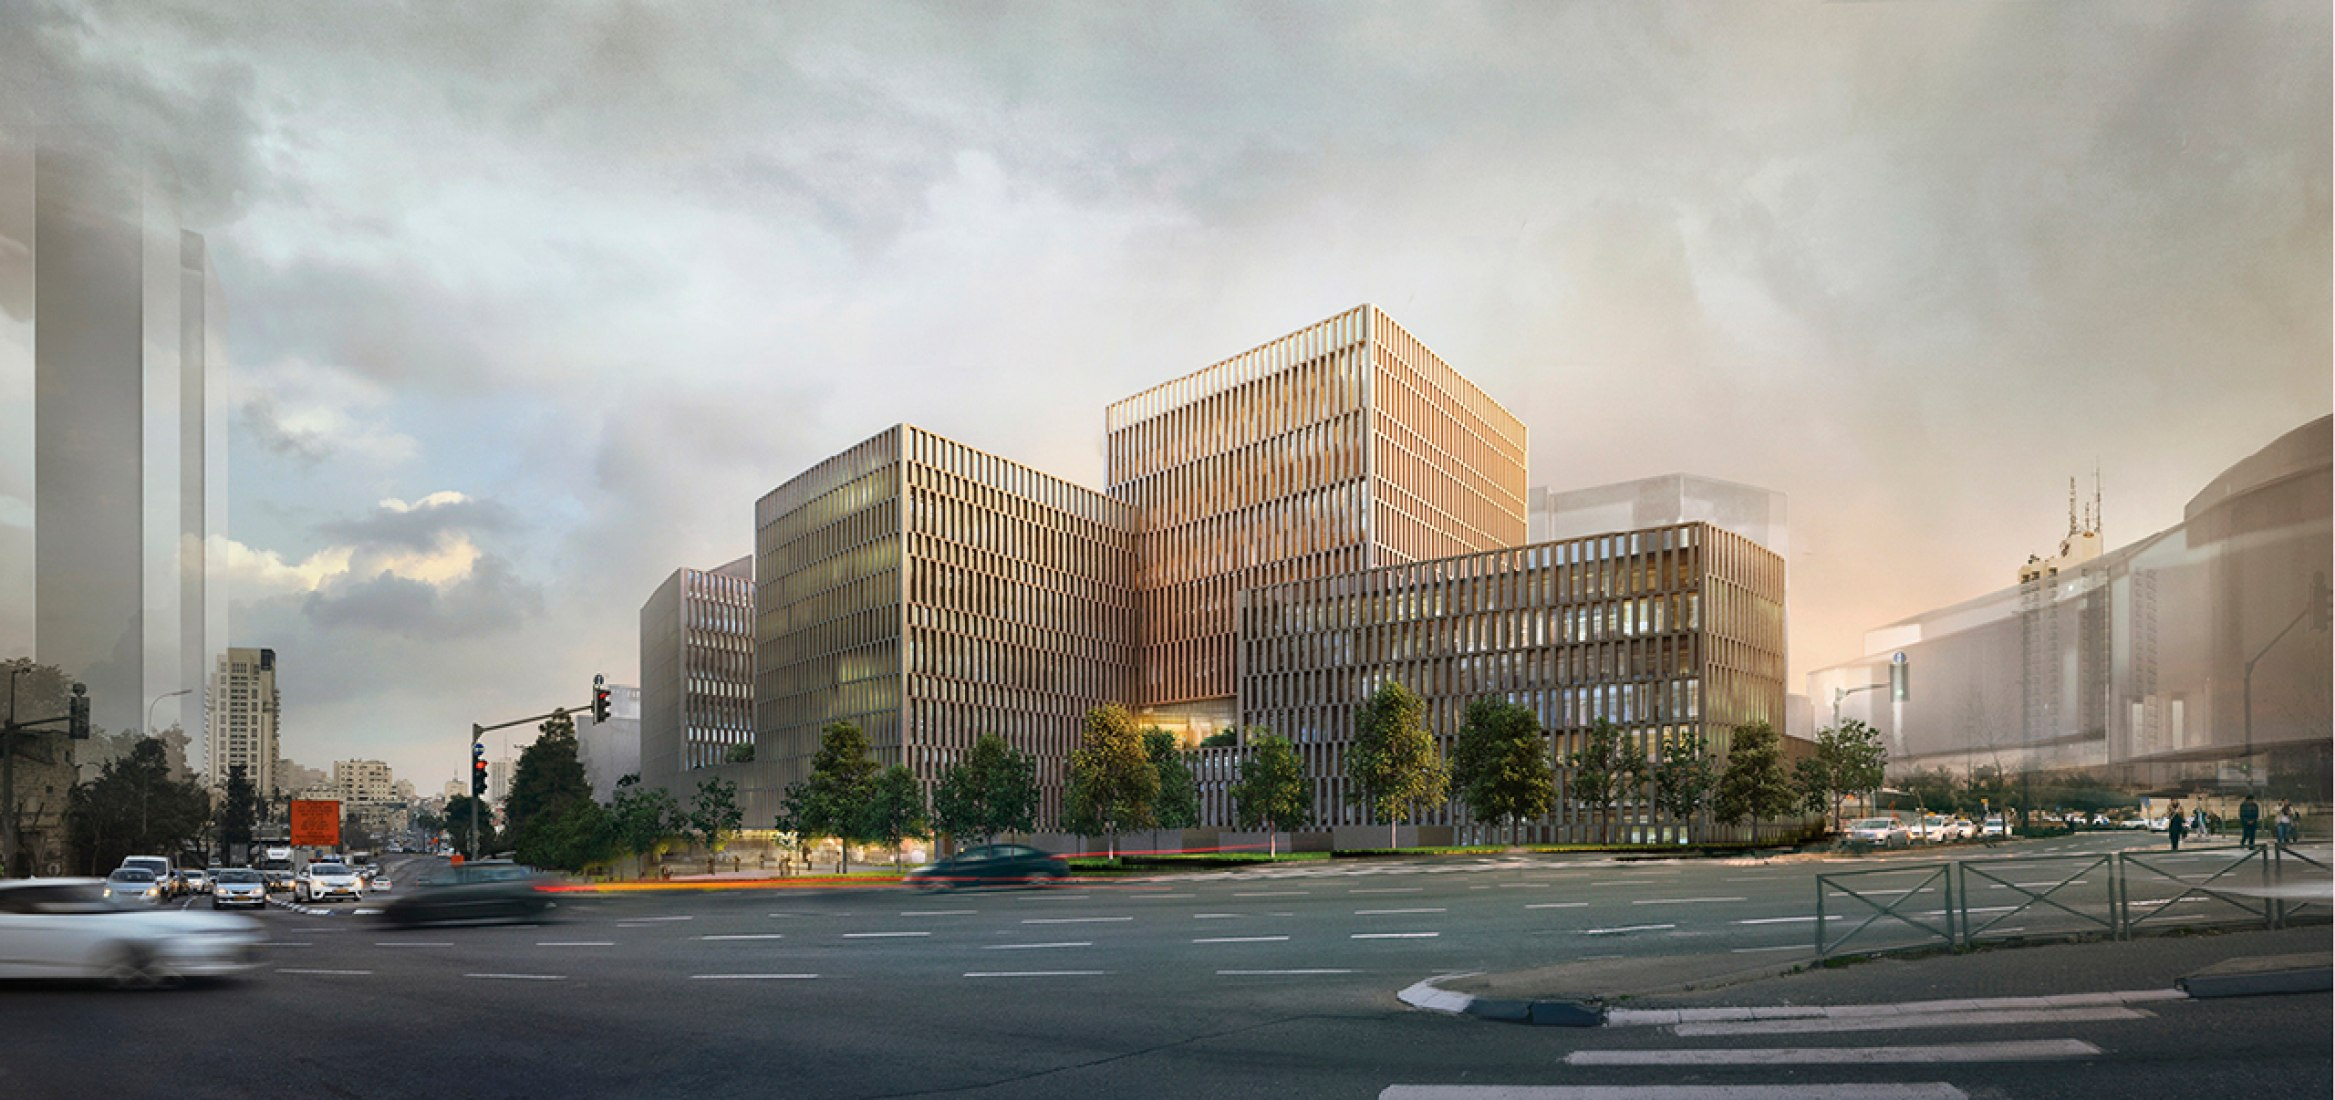 Rendering. Jerusalem District Courthouse by Studio PEZ and Zarhy Architects.